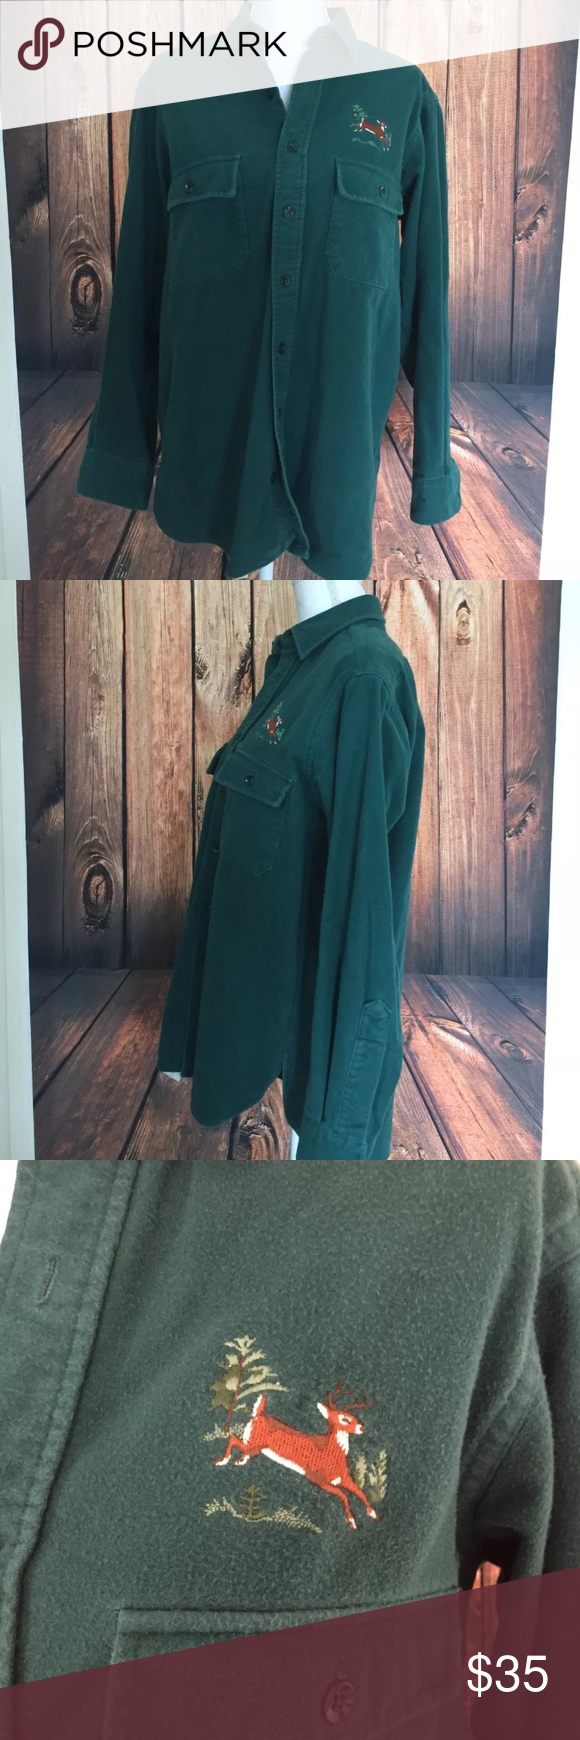 LL Bean Chamois shirt with deer embroidery